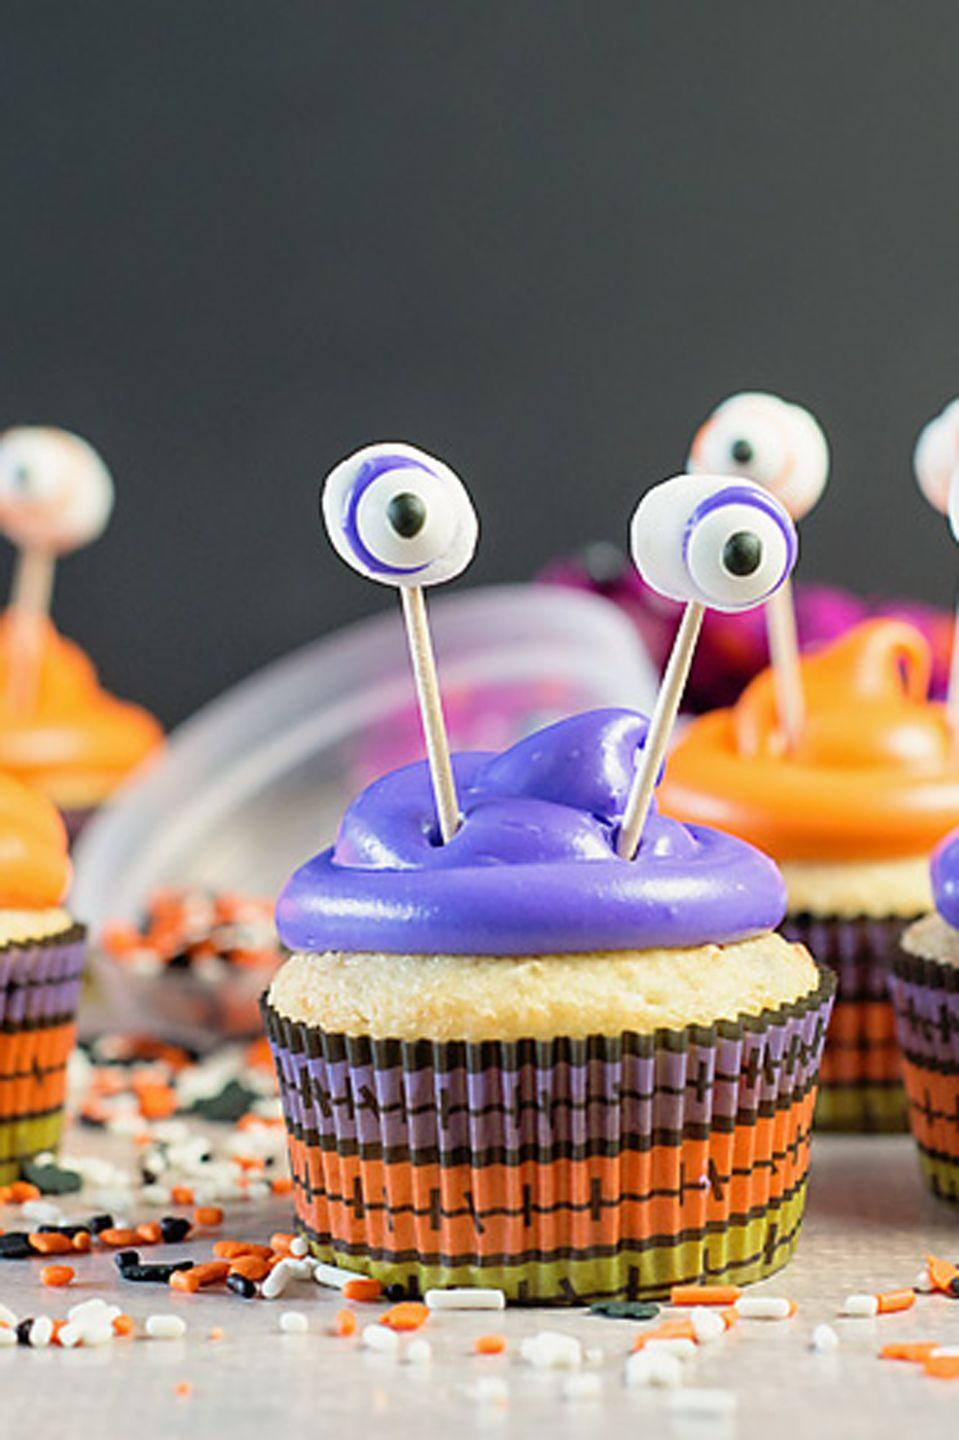 """<p>These creepy (but cute!) cupcakes have gone 3-D with the help of toothpicks, marshmallows, and dab of frosting. </p><p><em><a href=""""https://www.scatteredthoughtsofacraftymom.com/easy-monster-cupcakes-halloween/"""" rel=""""nofollow noopener"""" target=""""_blank"""" data-ylk=""""slk:Get the recipe at Scattered Thoughts of a Crafty Mom »"""" class=""""link rapid-noclick-resp"""">Get the recipe at Scattered Thoughts of a Crafty Mom »</a></em> </p>"""